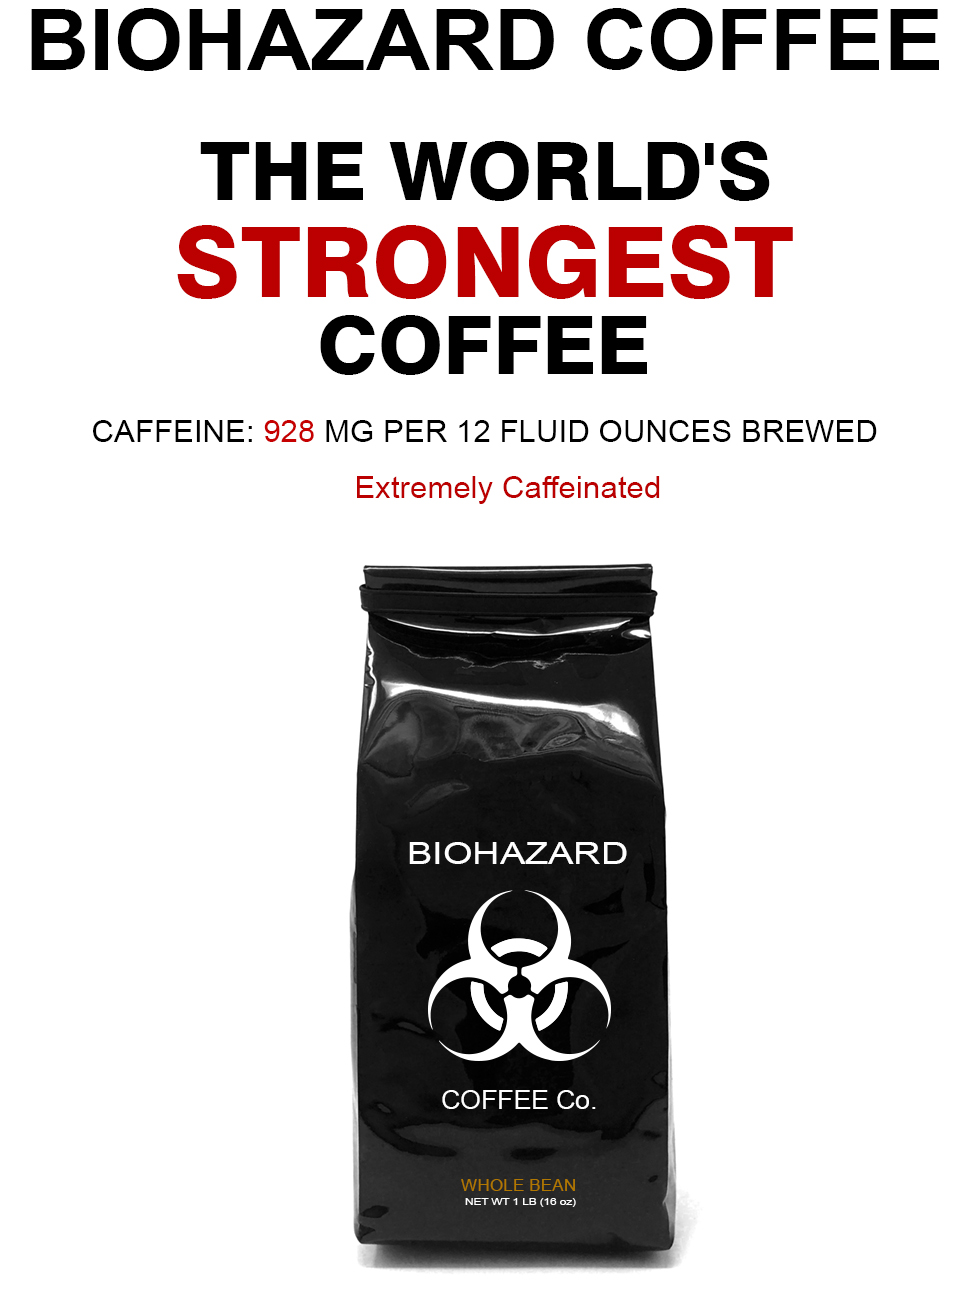 Amazon.com : Biohazard Whole Bean Coffee, The World\'s Strongest ...